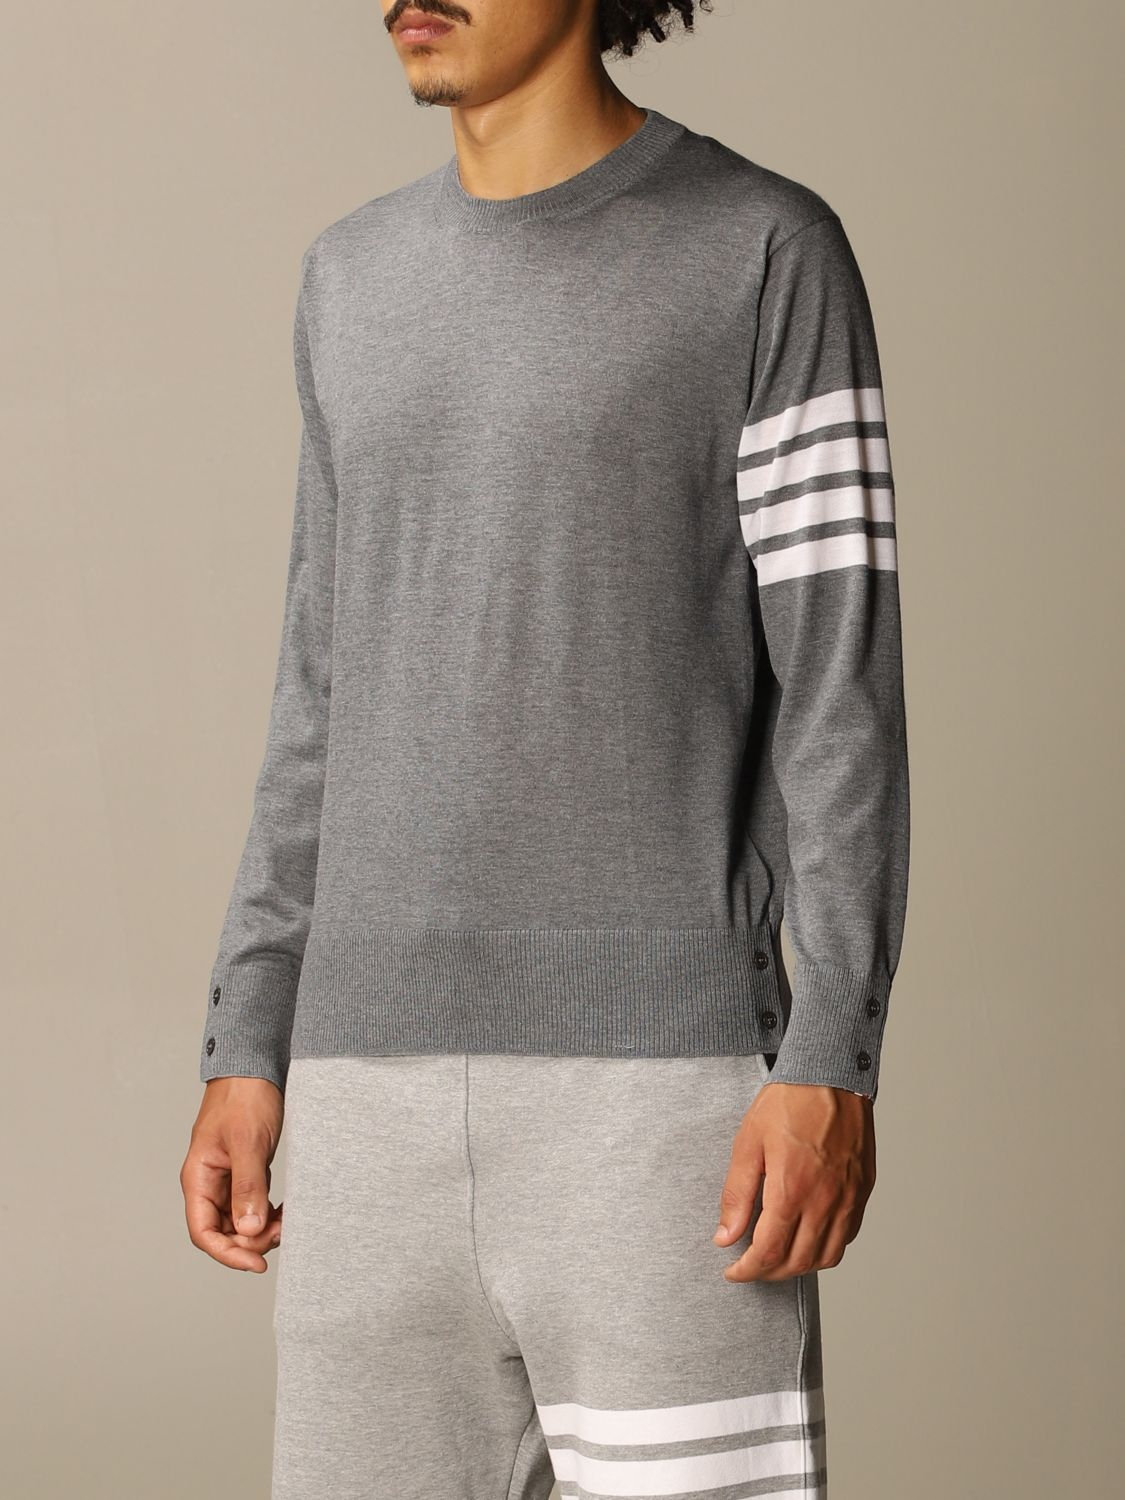 Sweater Thom Browne: Thom Browne pullover in merino wool with bands charcoal 4